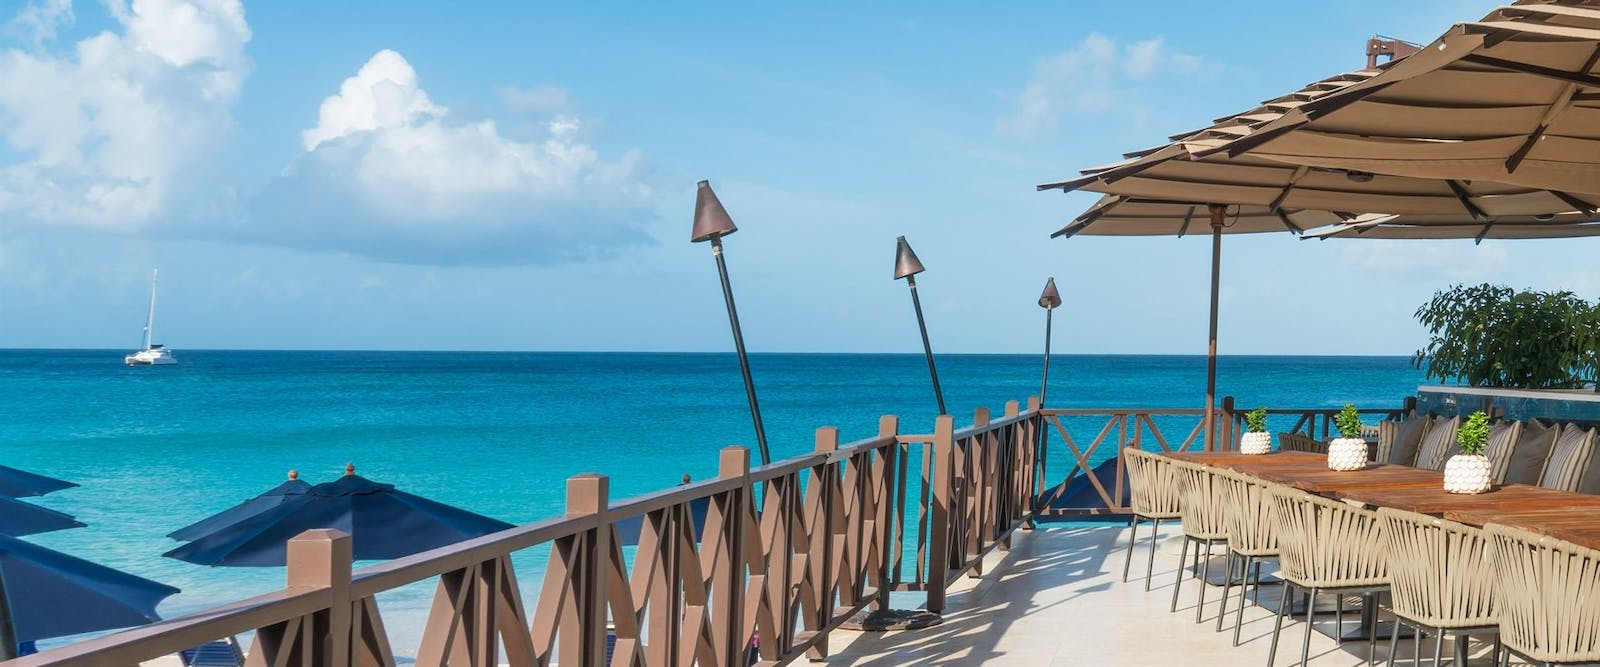 Beach-side Deck at The Sandpiper, Barbados